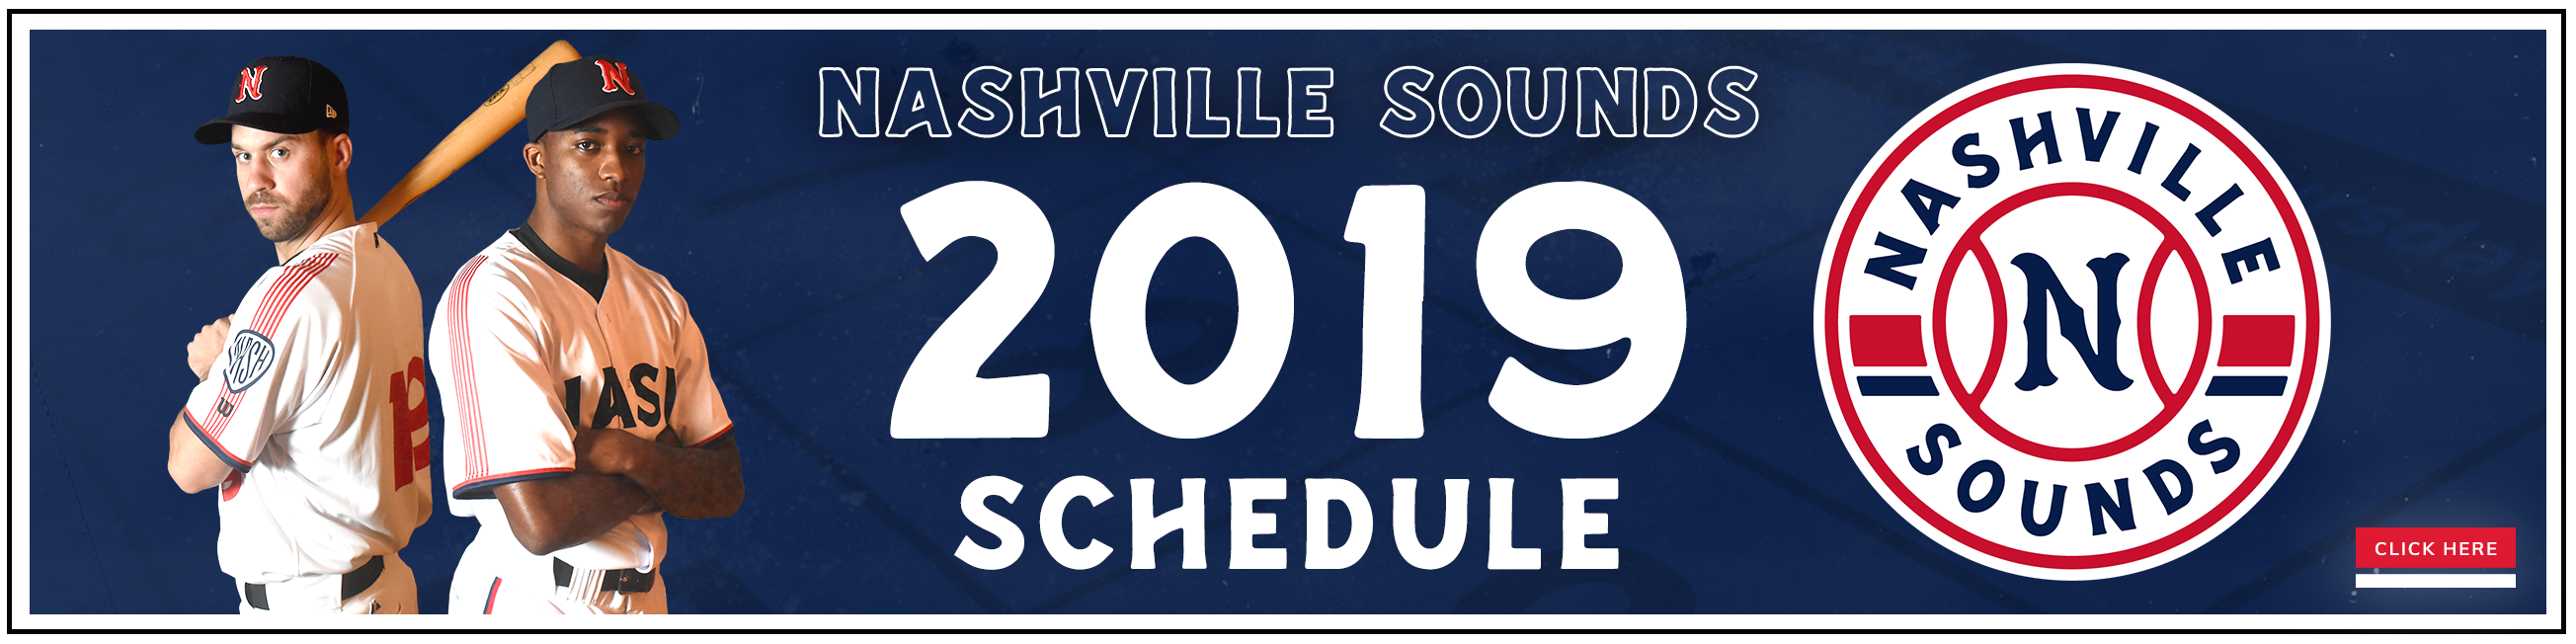 Sounds Announce 2019 Schedule Nashville Sounds News